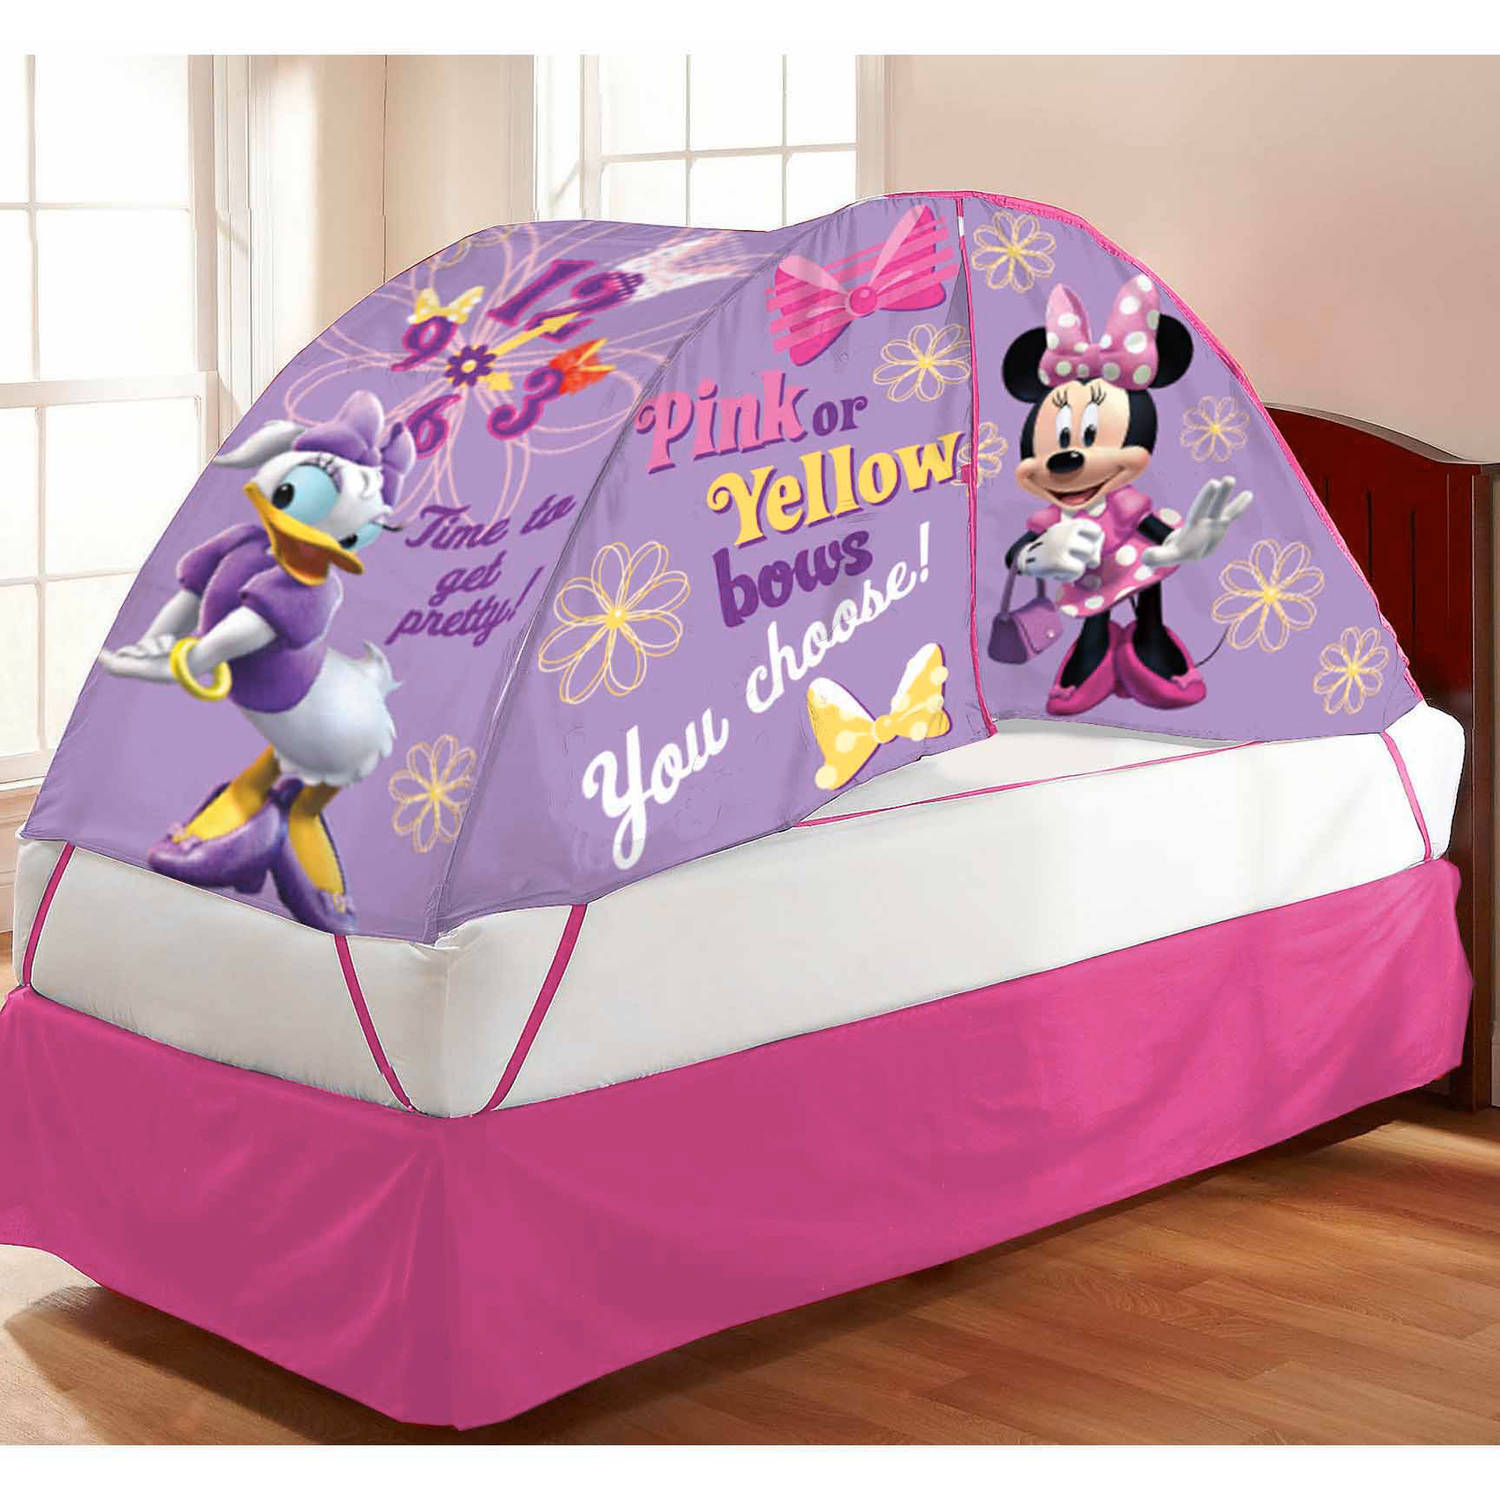 Minnie Mouse Bed Tent with Pushlight